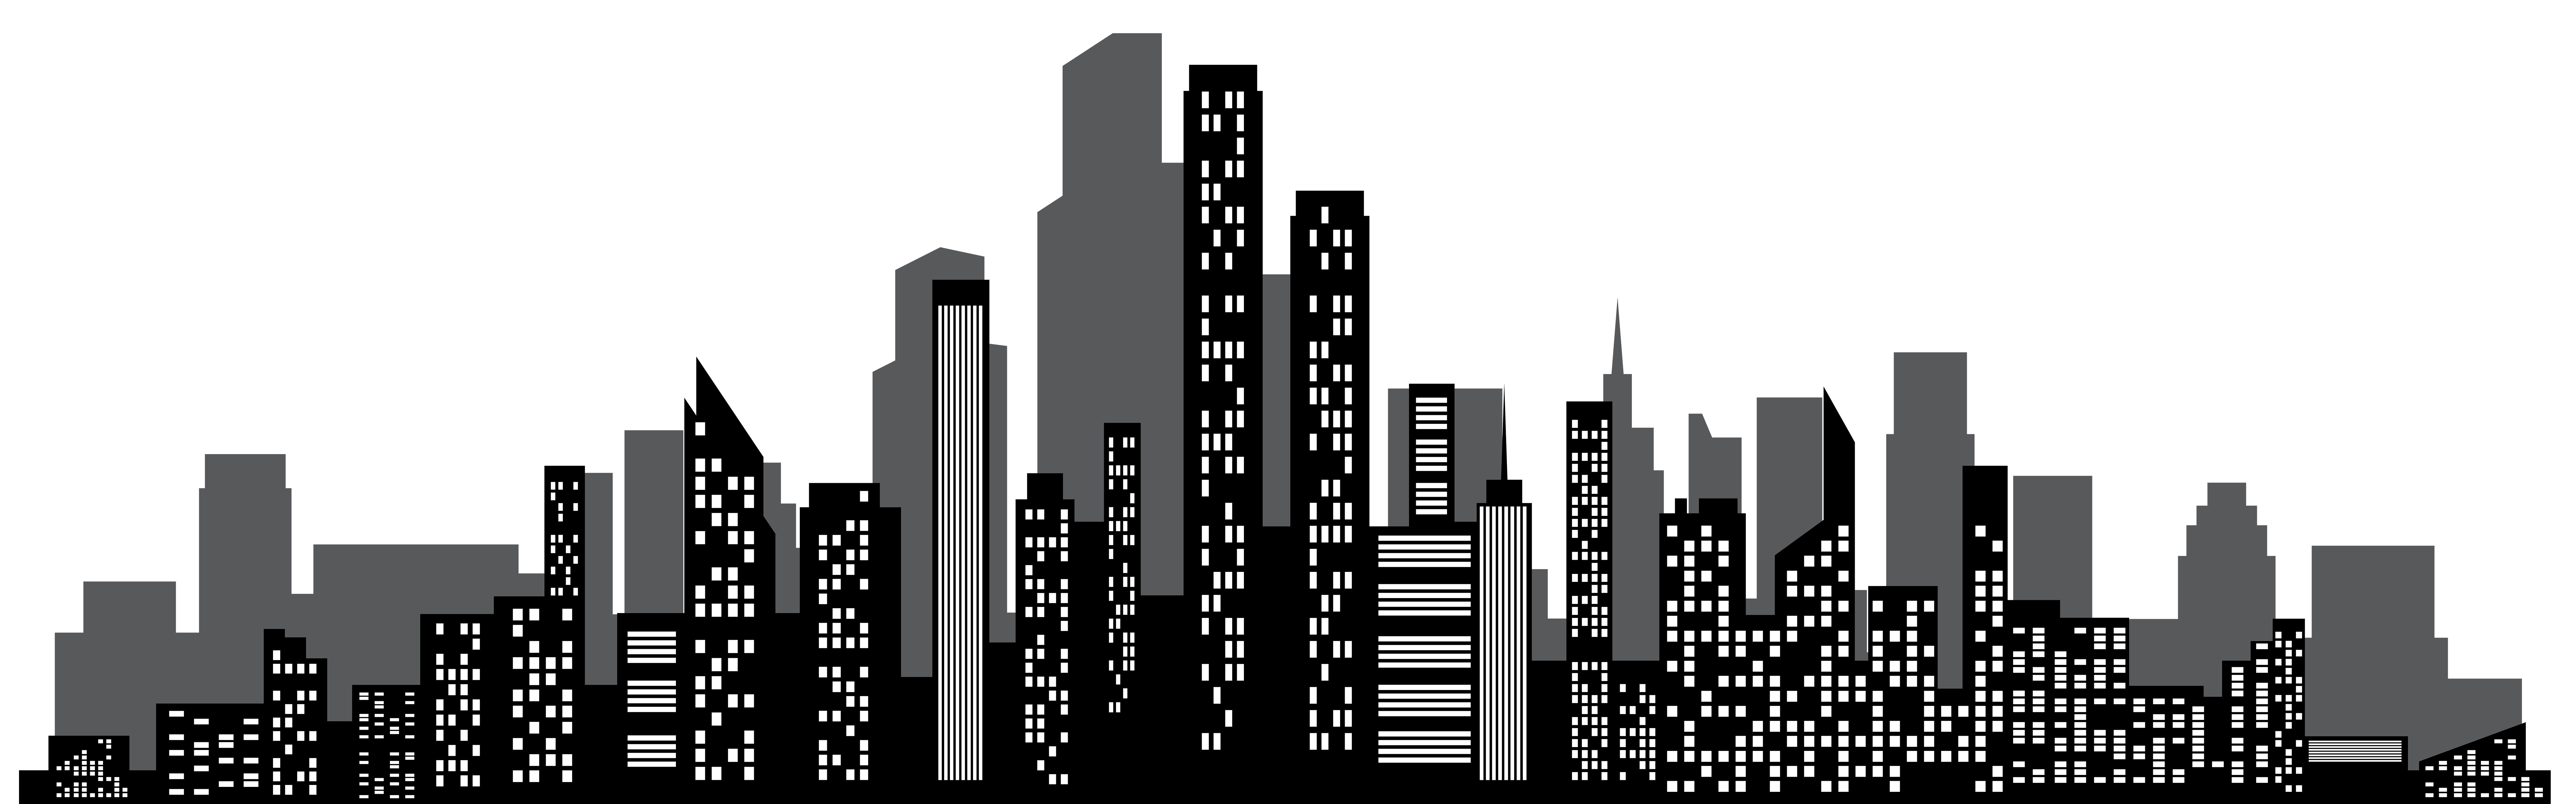 Comic book cityscape clipart jpg transparent 28+ Collection of Cityscape Clipart | High quality, free cliparts ... jpg transparent